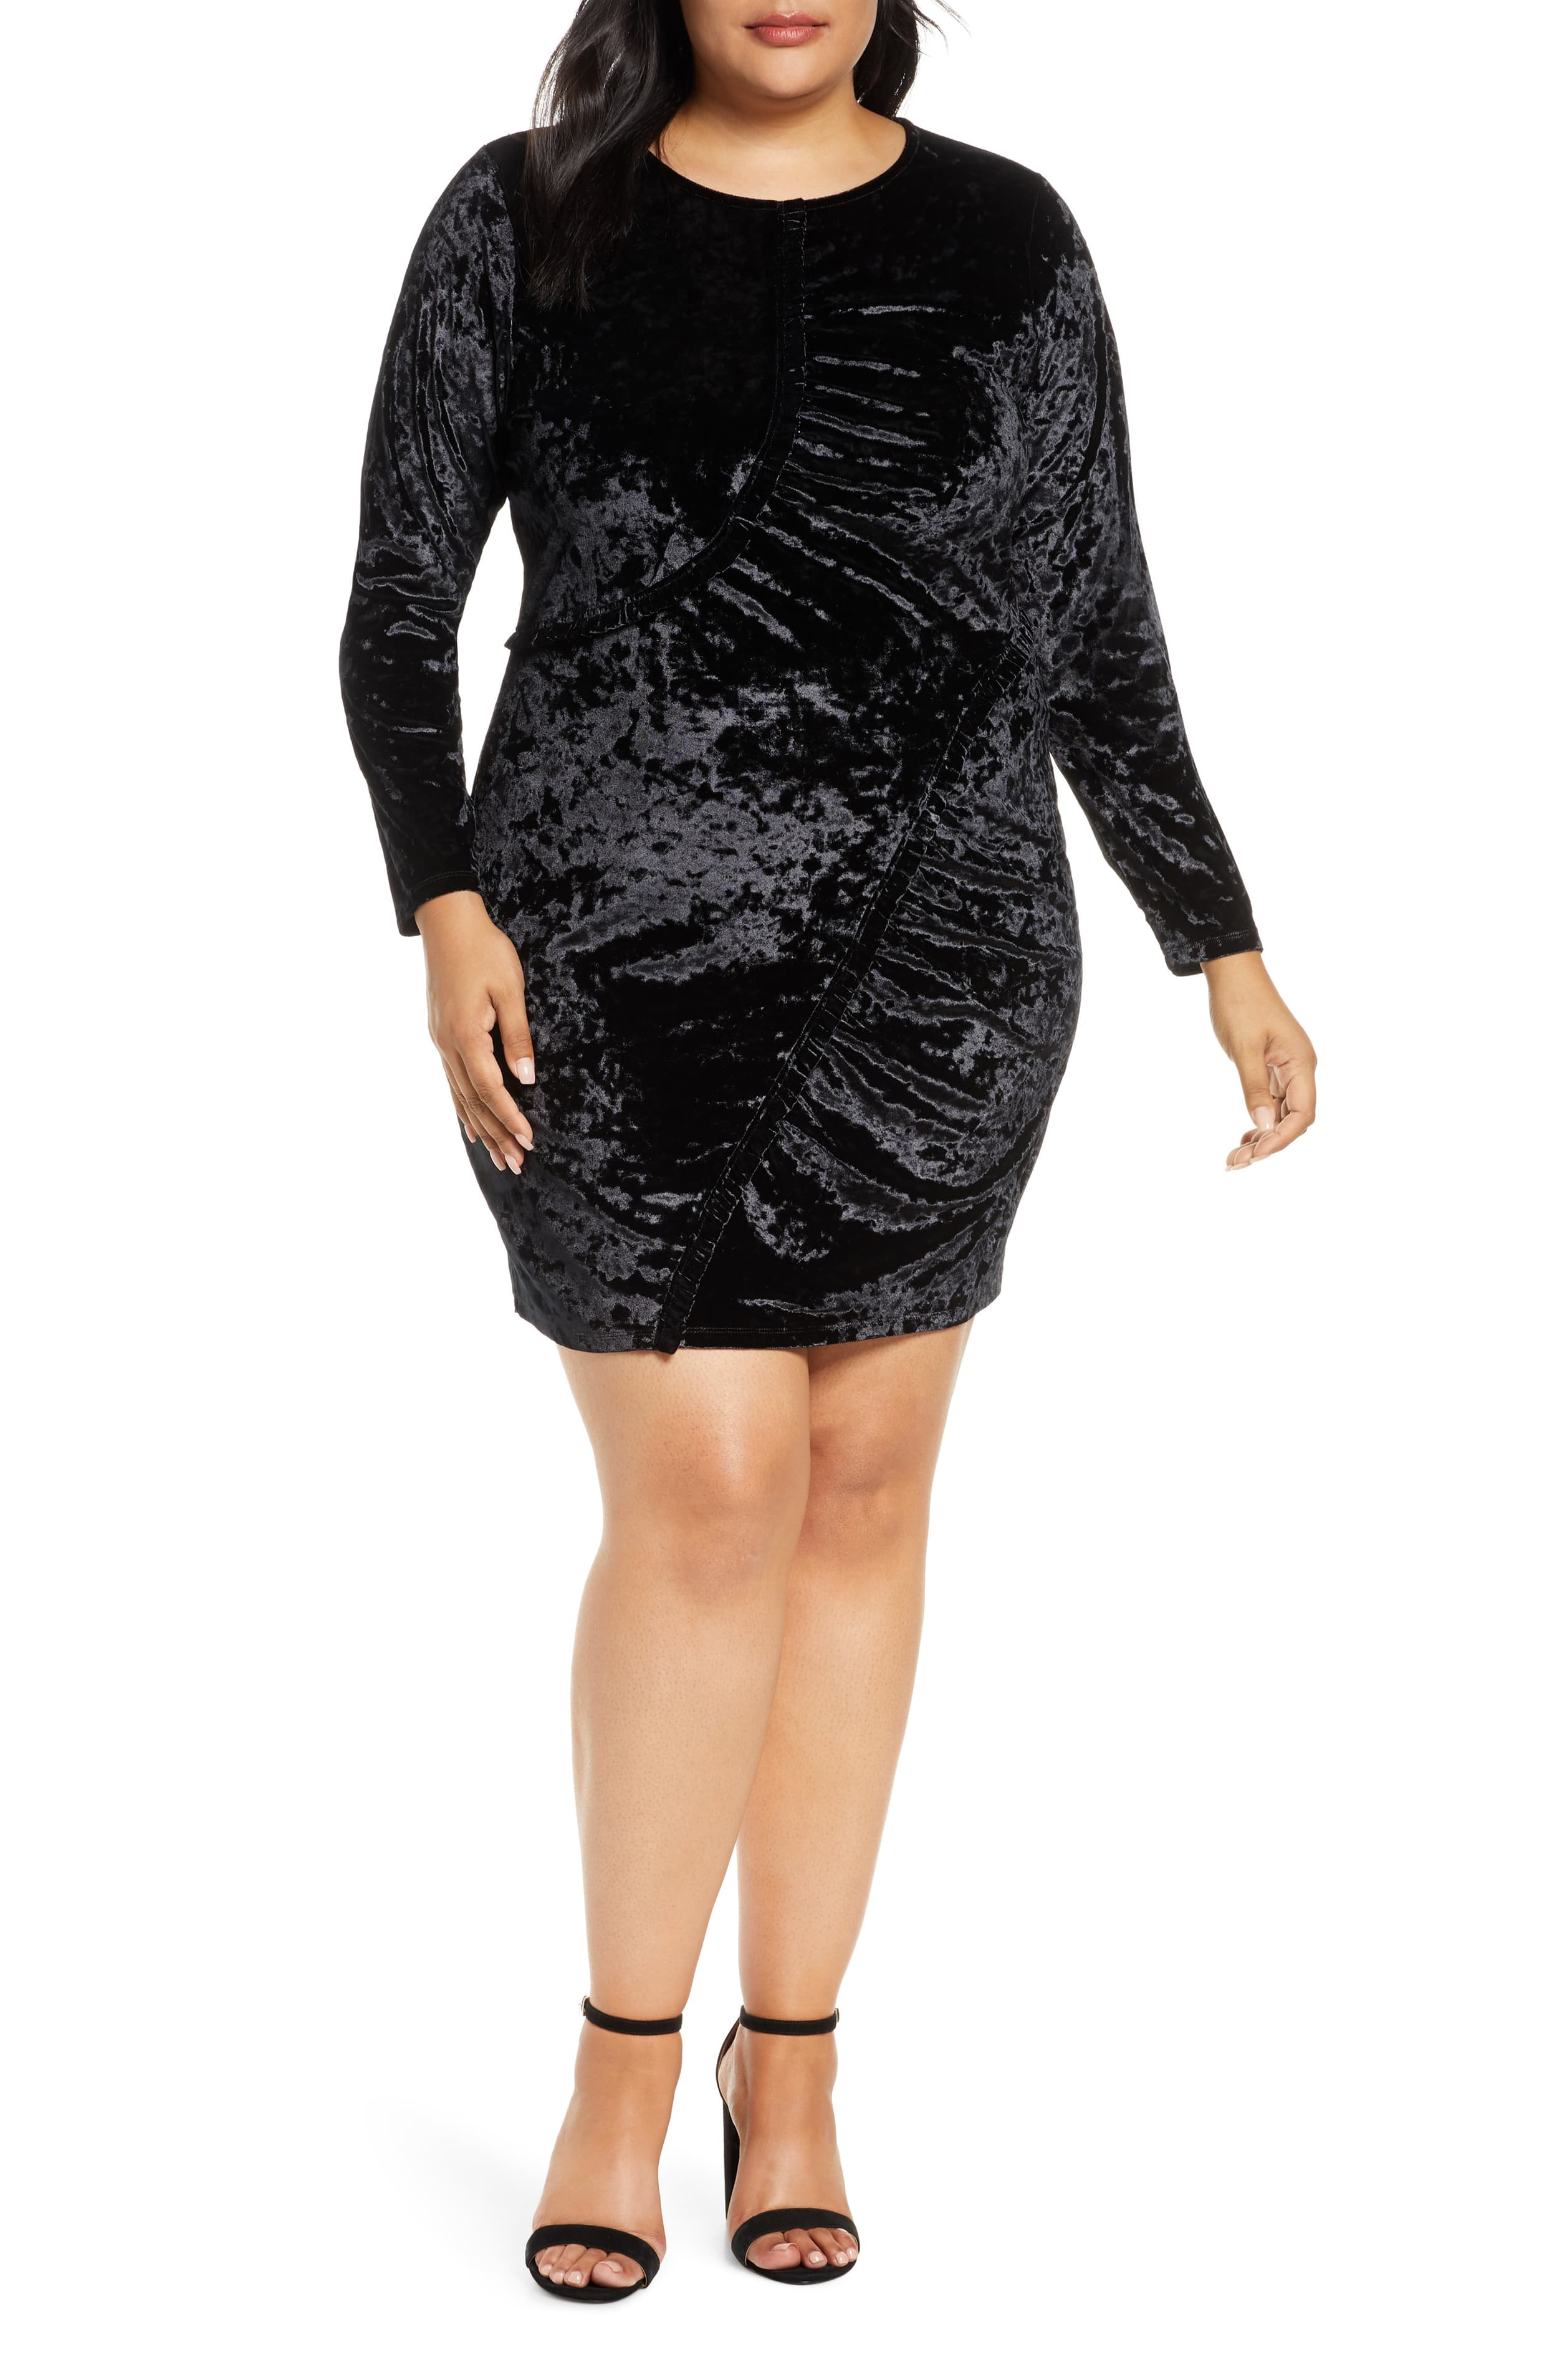 "<p>This ruched sheath dress in sumptuous velvet puts a sophisticated spin on a favorite retro trend. $115</p><p><a  href=""https://shop.nordstrom.com/s/michael-michael-kors-long-sleeve-ruched-velvet-dress-plus-size/5406982/full?origin=category-personalizedsort&breadcrumb=Home%2FWomen%2FShop%20by%20Occasion%2FNight%20Out&color=001-black"" target=""_blank"" title=""https://shop.nordstrom.com/s/michael-michael-kors-long-sleeve-ruched-velvet-dress-plus-size/5406982/full?origin=category-personalizedsort&breadcrumb=Home%2FWomen%2FShop%20by%20Occasion%2FNight%20Out&color=001-black"">Shop it{&nbsp;}</a></p><p>(Image: Nordstrom){&nbsp;}</p>"